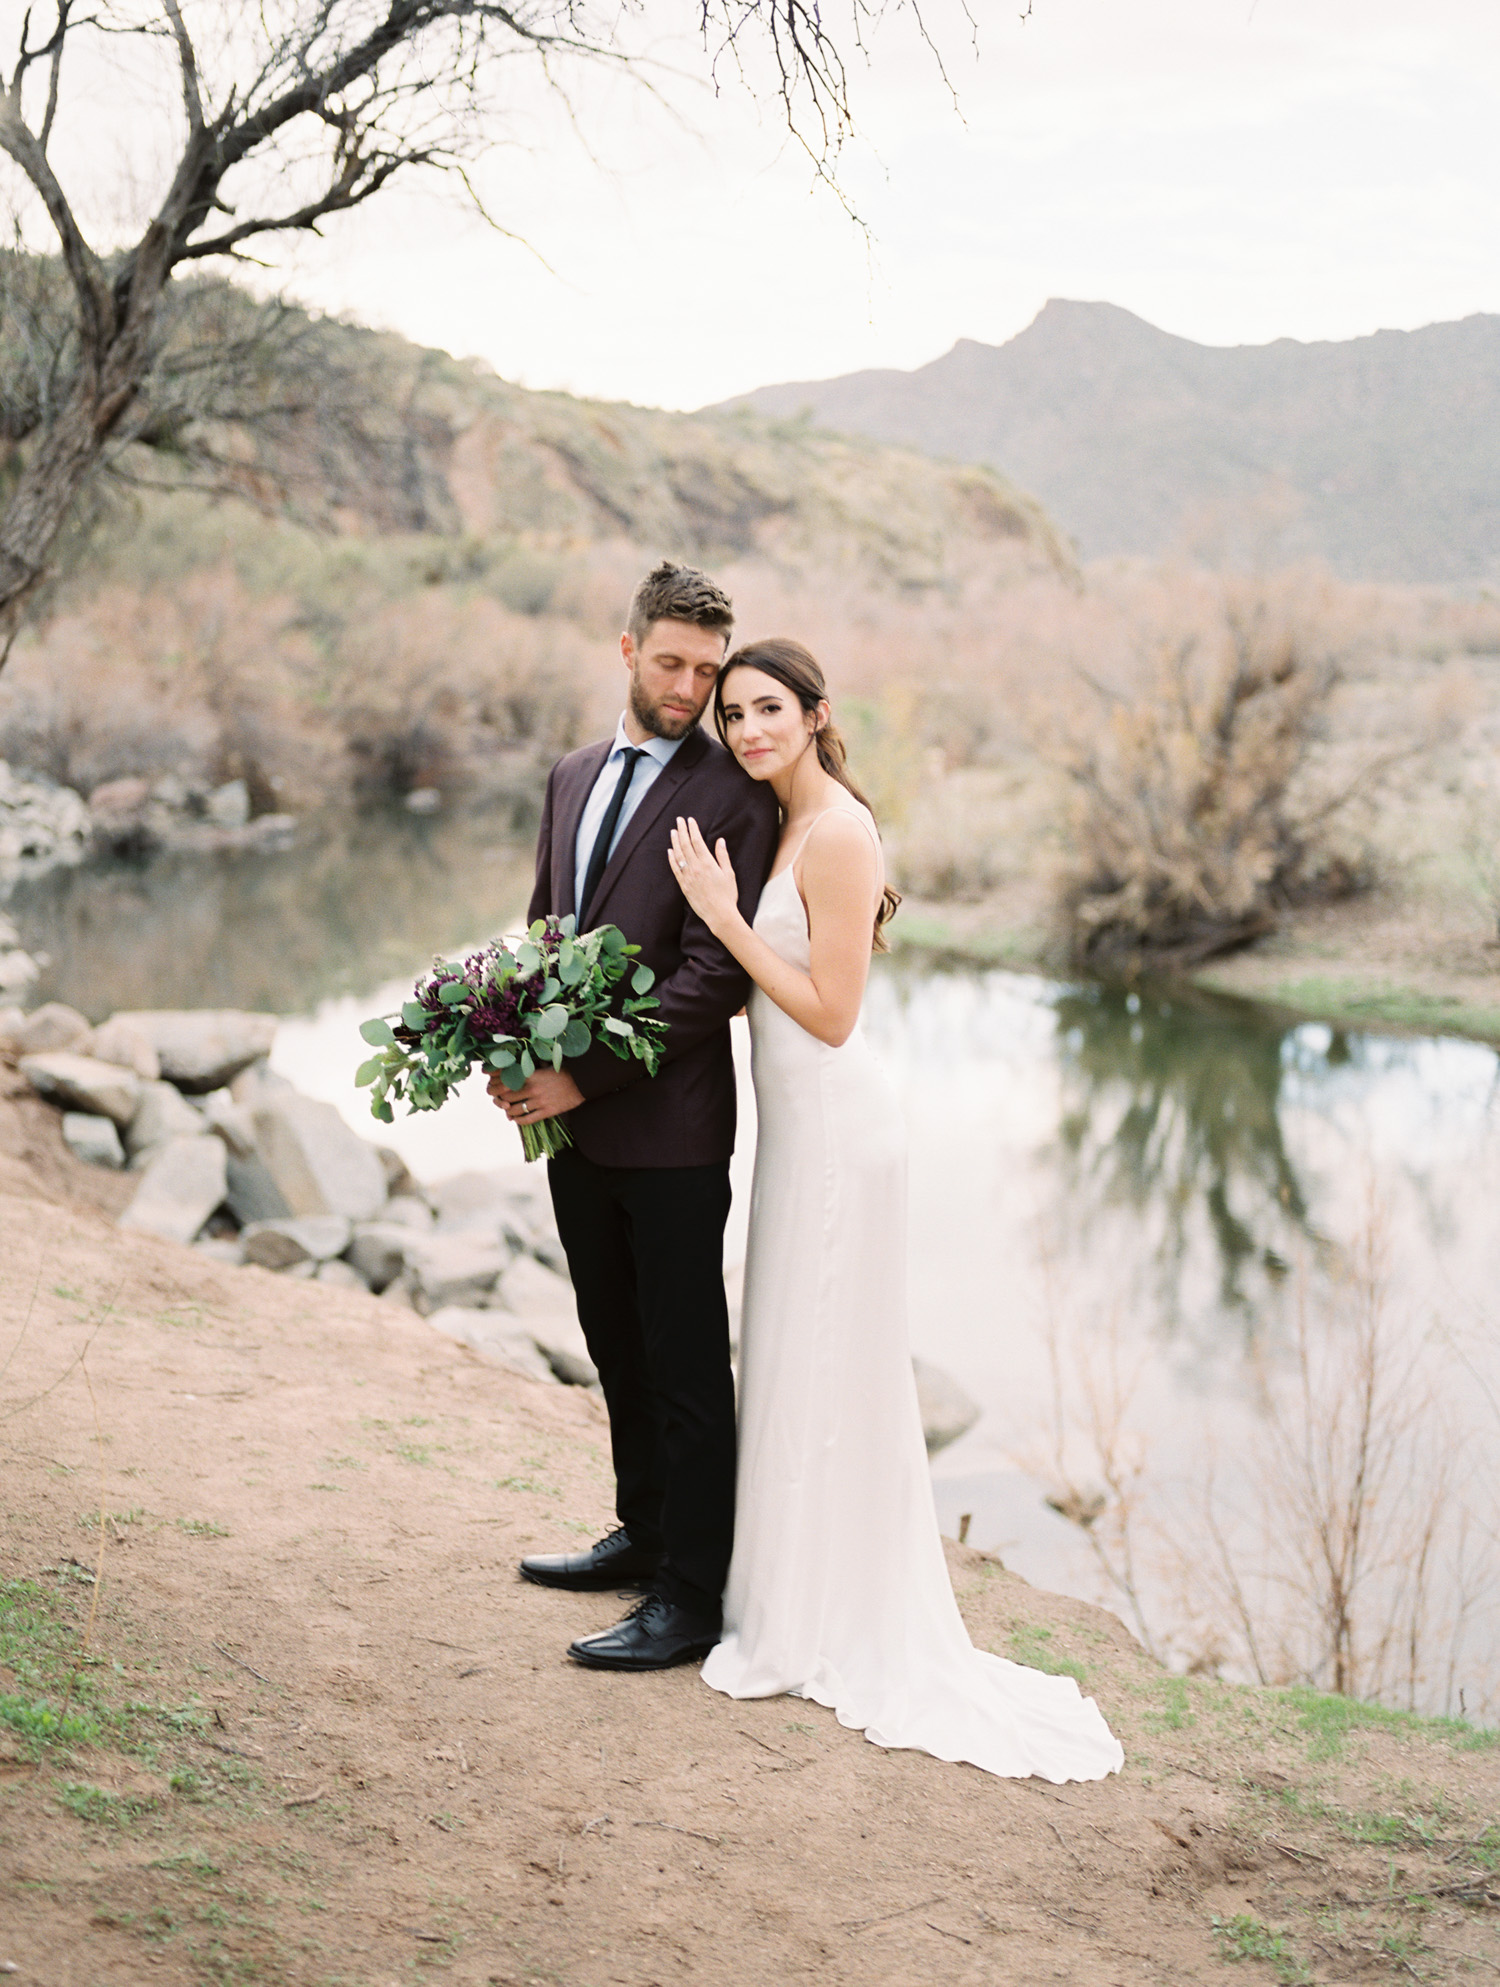 Gorgeous bride embracing her groom who is holding her bouquet. Gorgeous salt river views in the background.